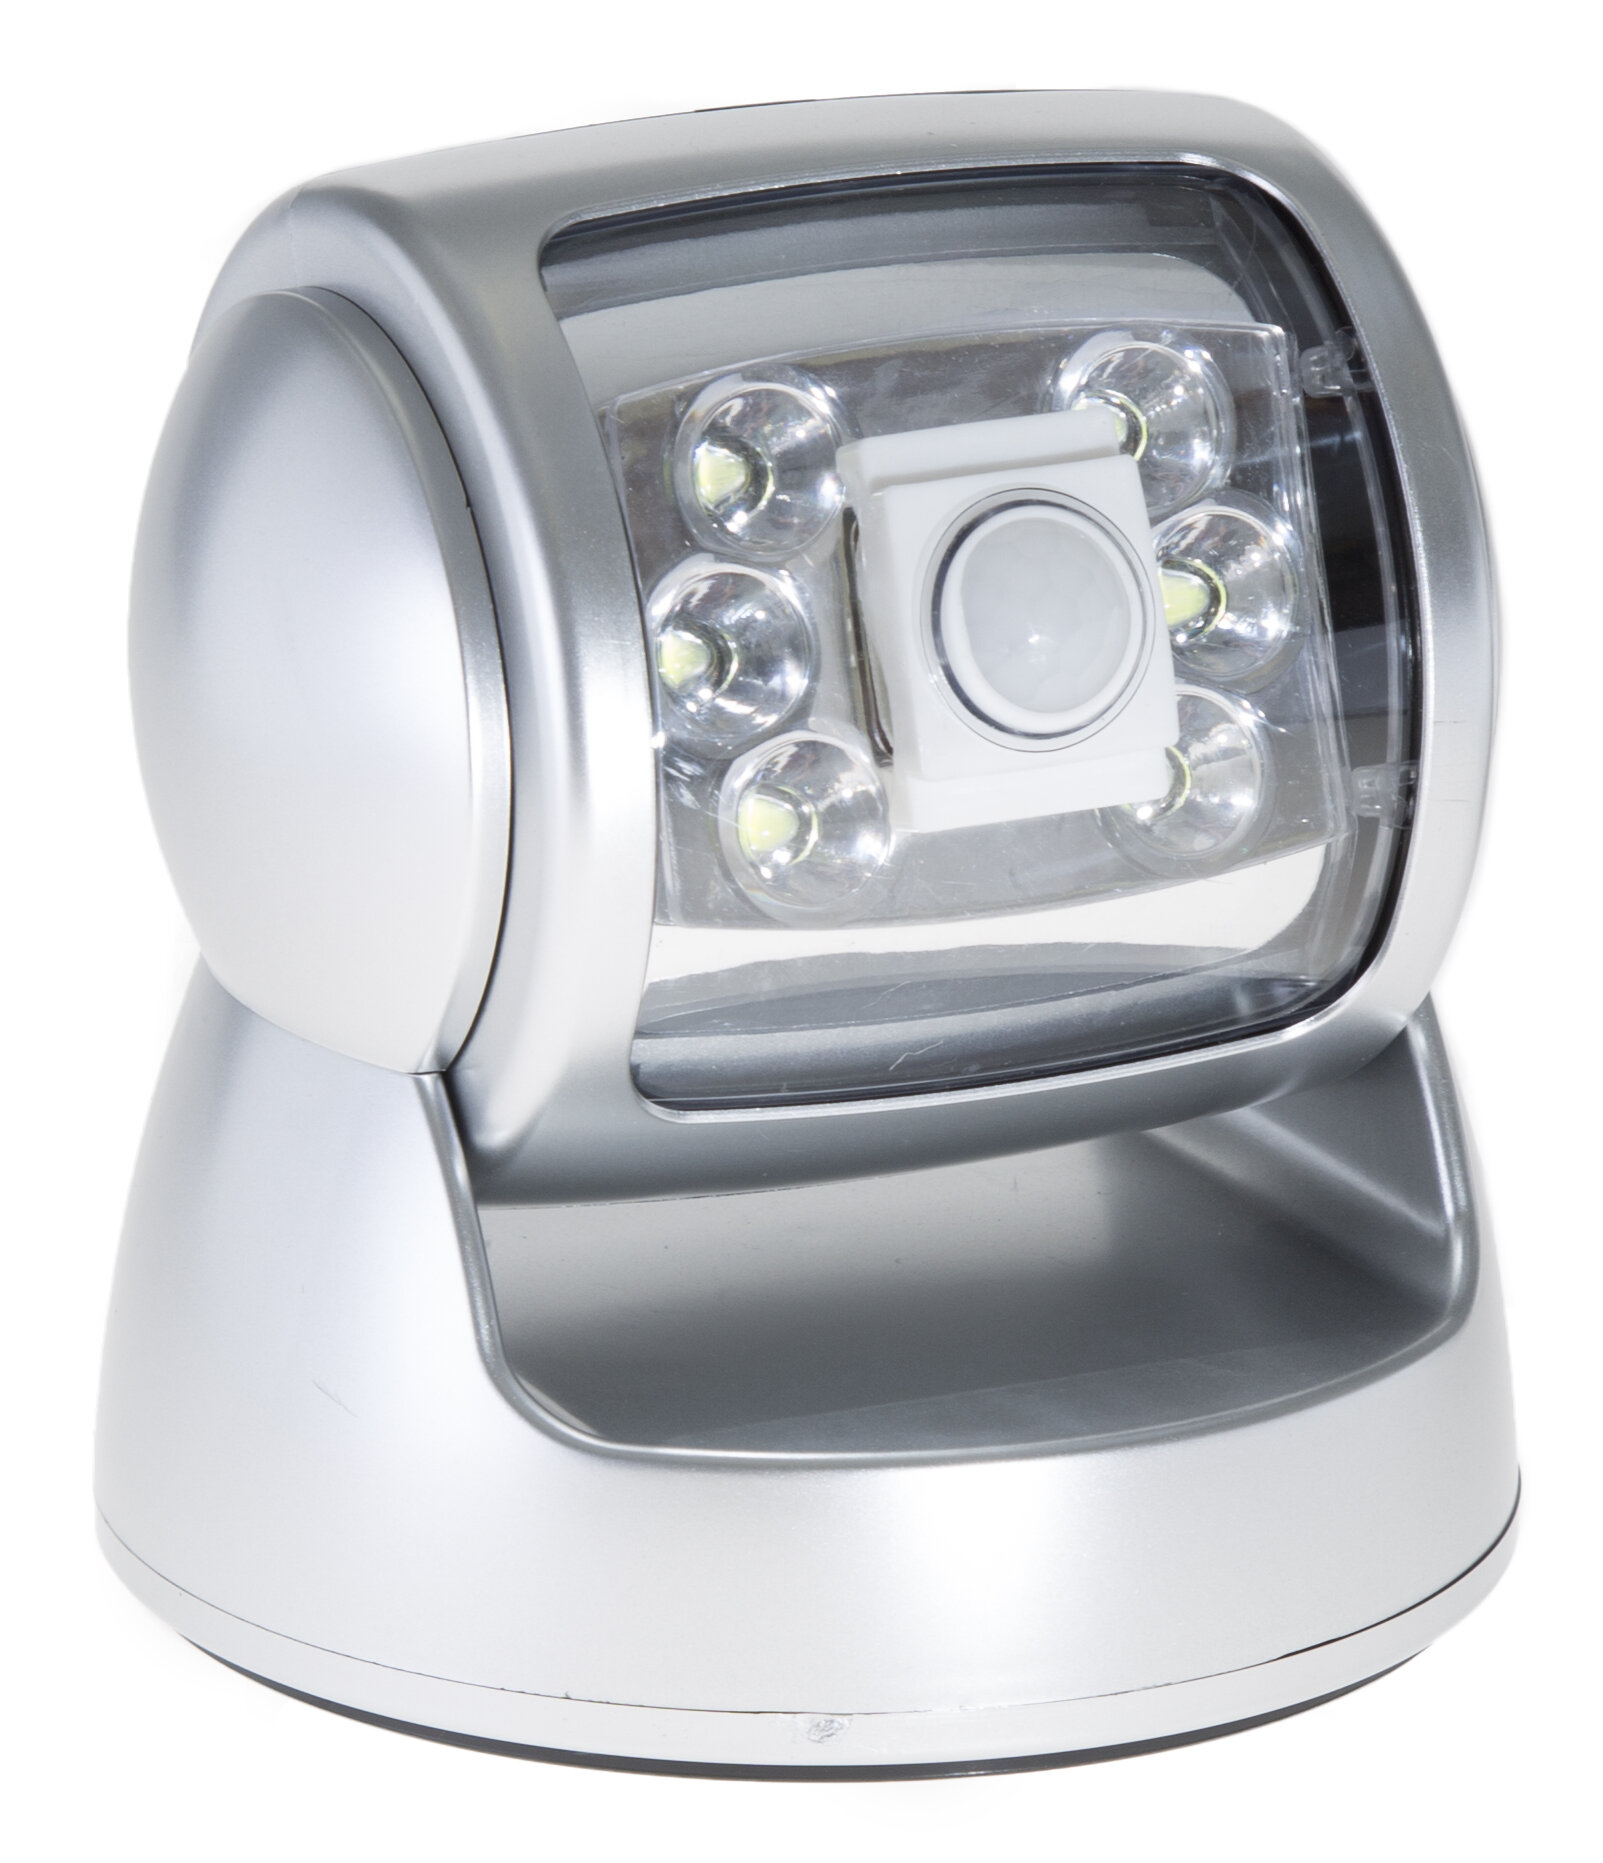 Everyday Home Led Battery Operated Outdoor Security Flood Light With Motion Sensor Reviews Wayfair